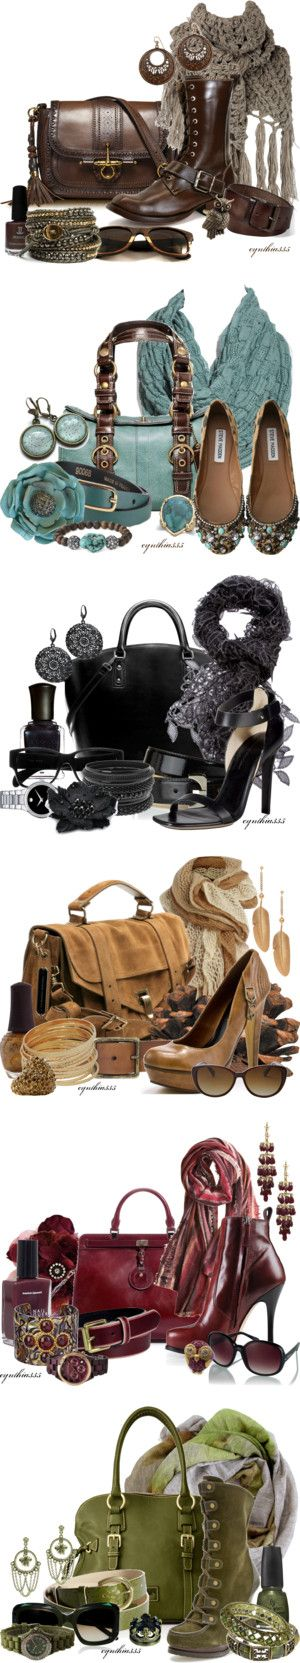 """Favorite Accessories"" by cynthia335 on Polyvore"